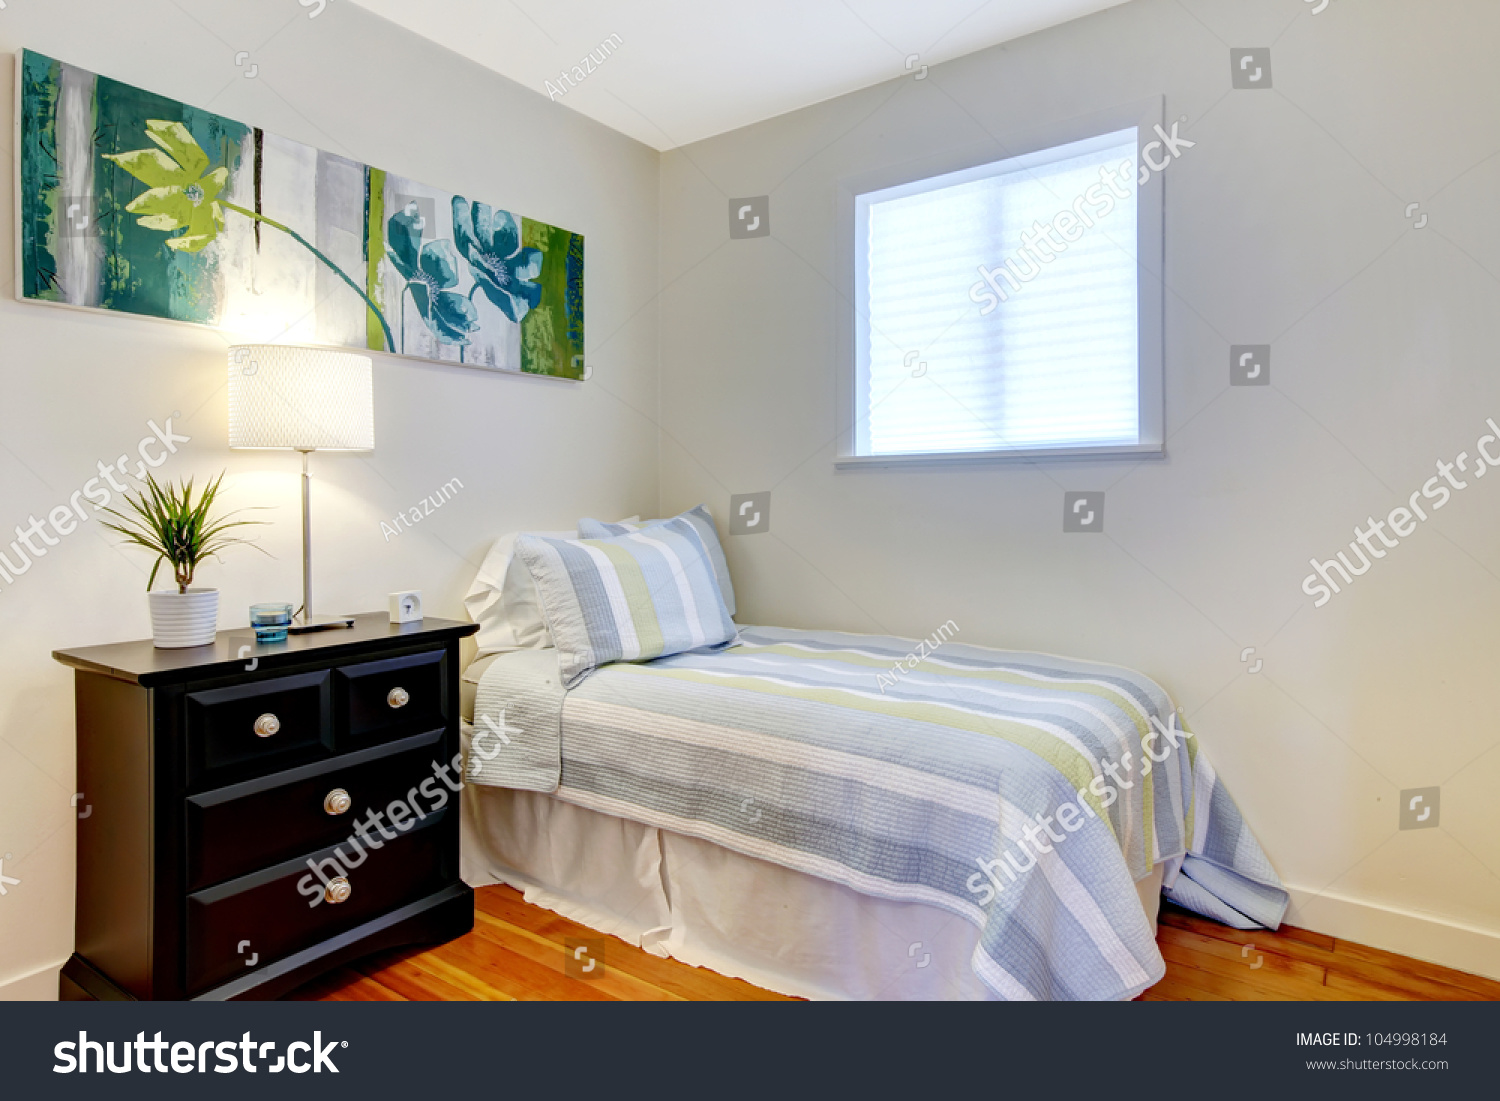 Simple Bedroom Black Nightstand Small Bed Stock Photo Edit Now 104998184